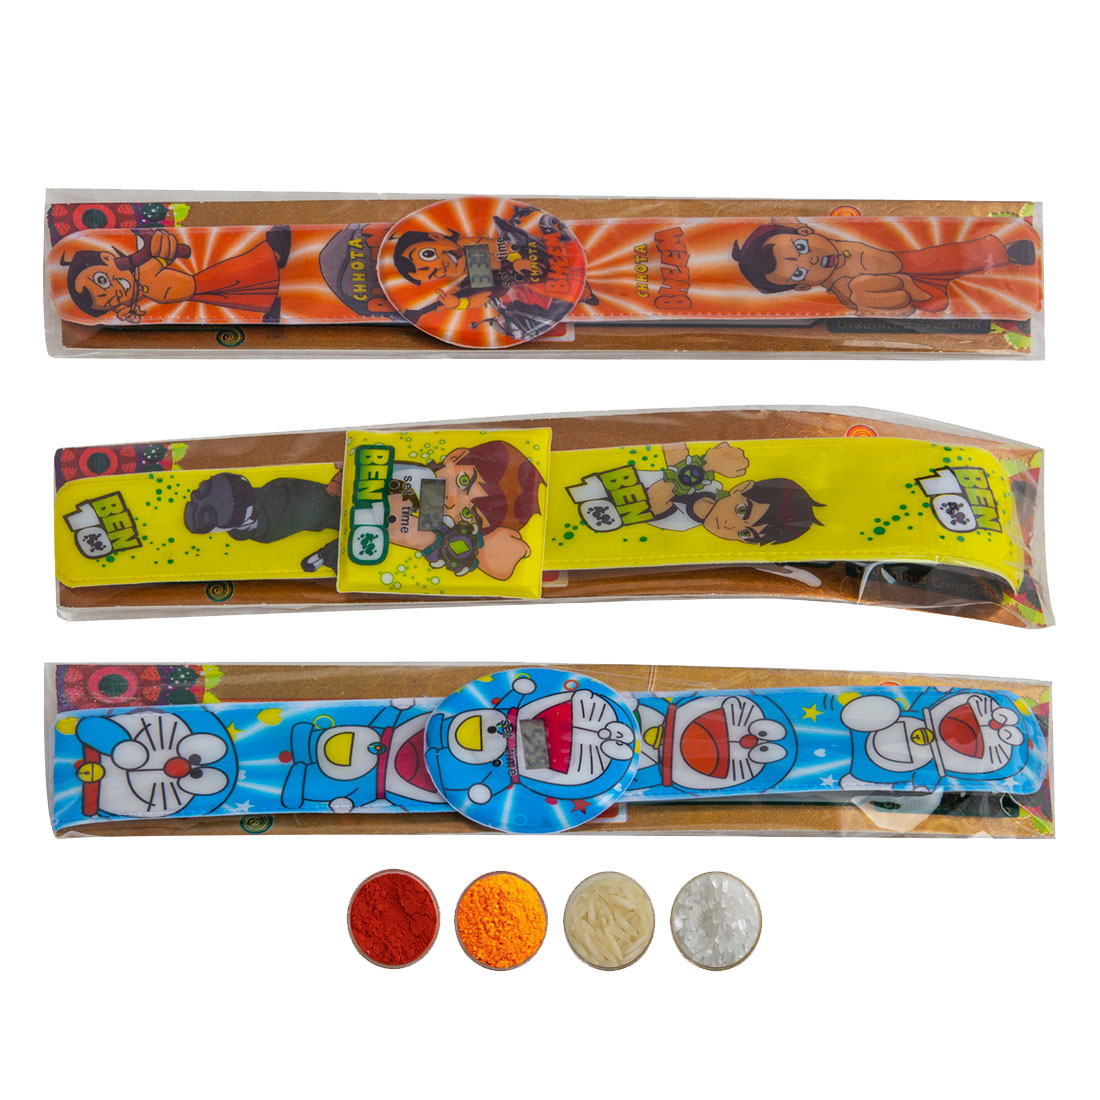 Digital Clock Kid's rakhi set of three